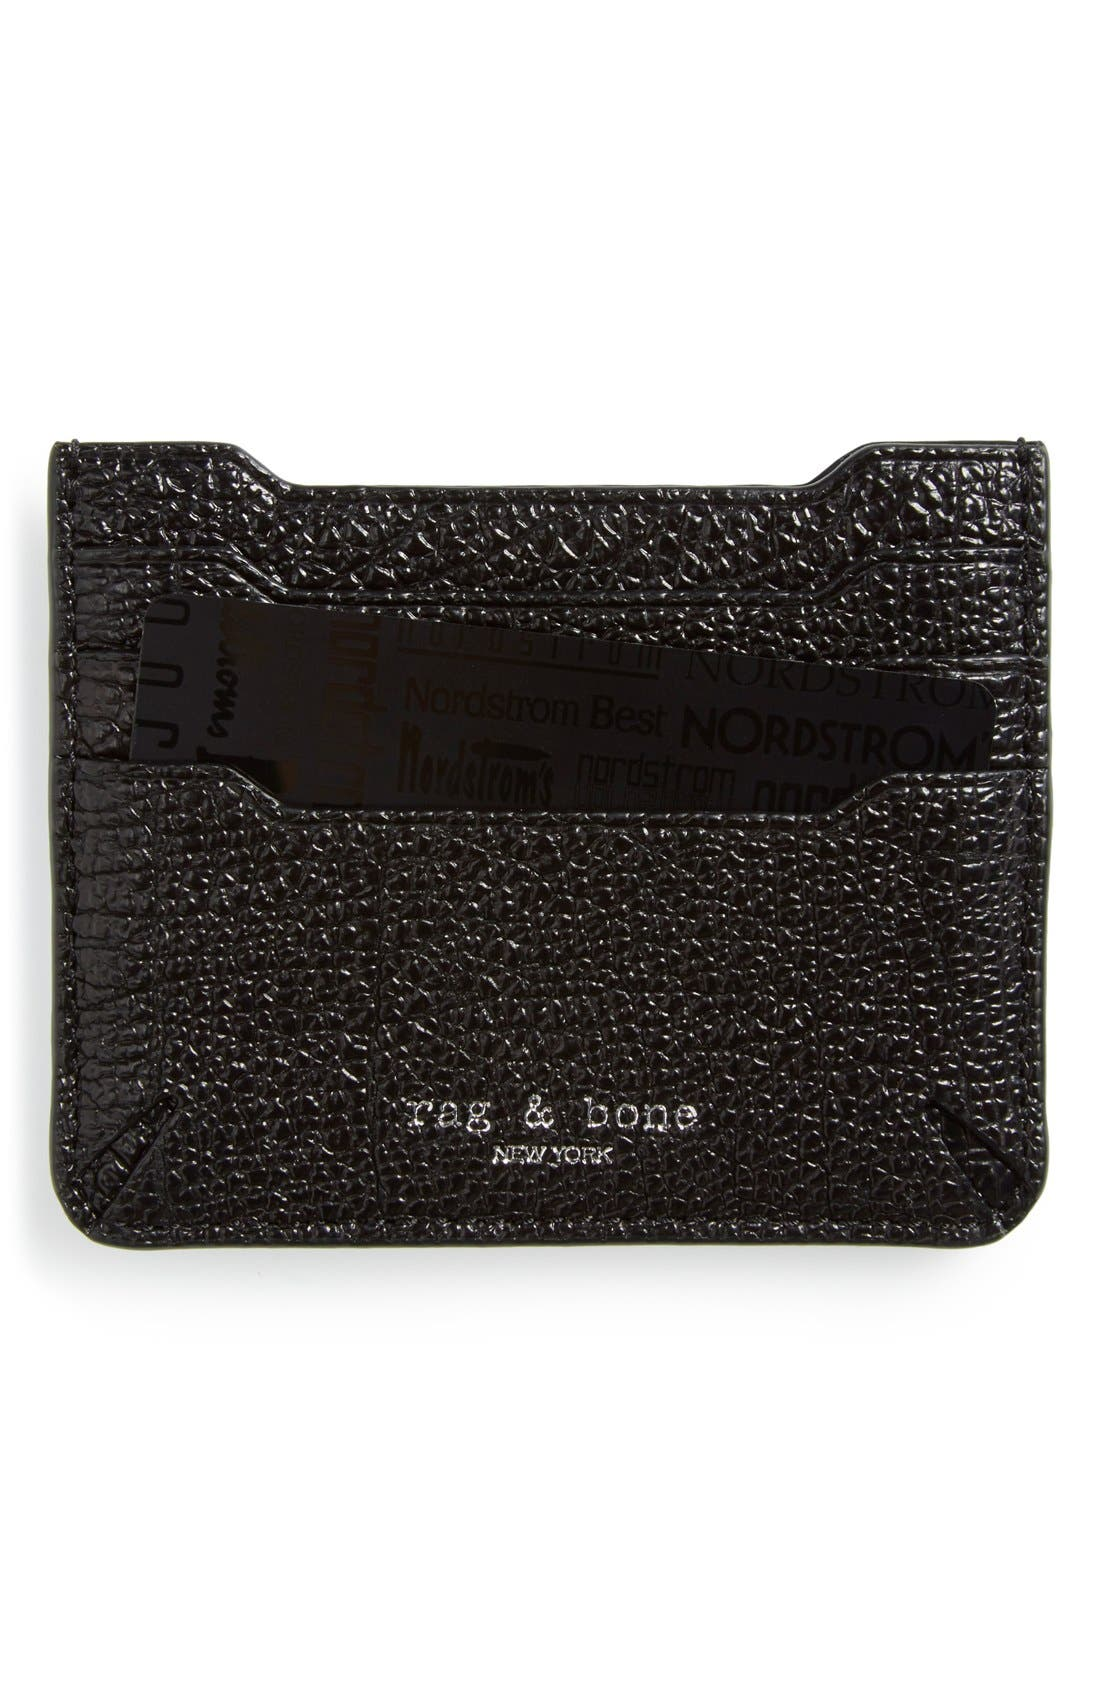 rag & bone 'Crosby' Crackle Leather Card Case